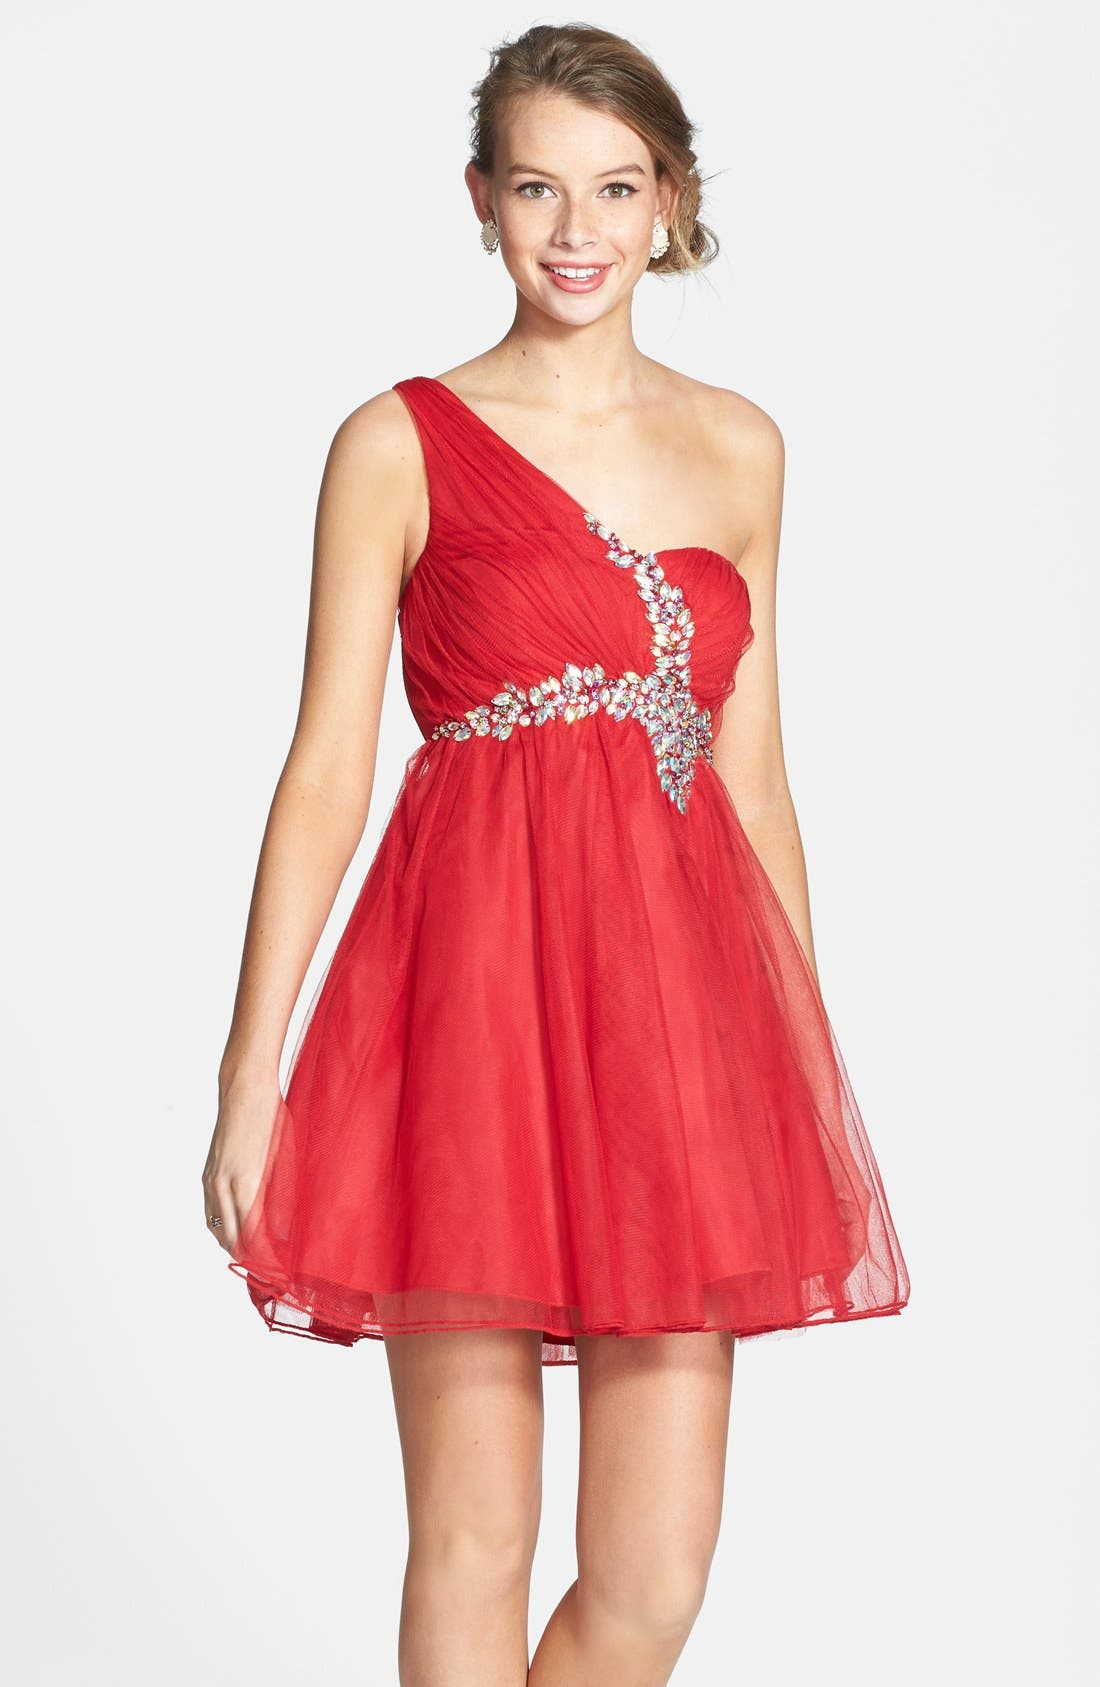 Alternate Image 1 Selected - Sequin Hearts Single Shoulder Party Dress (Juniors)